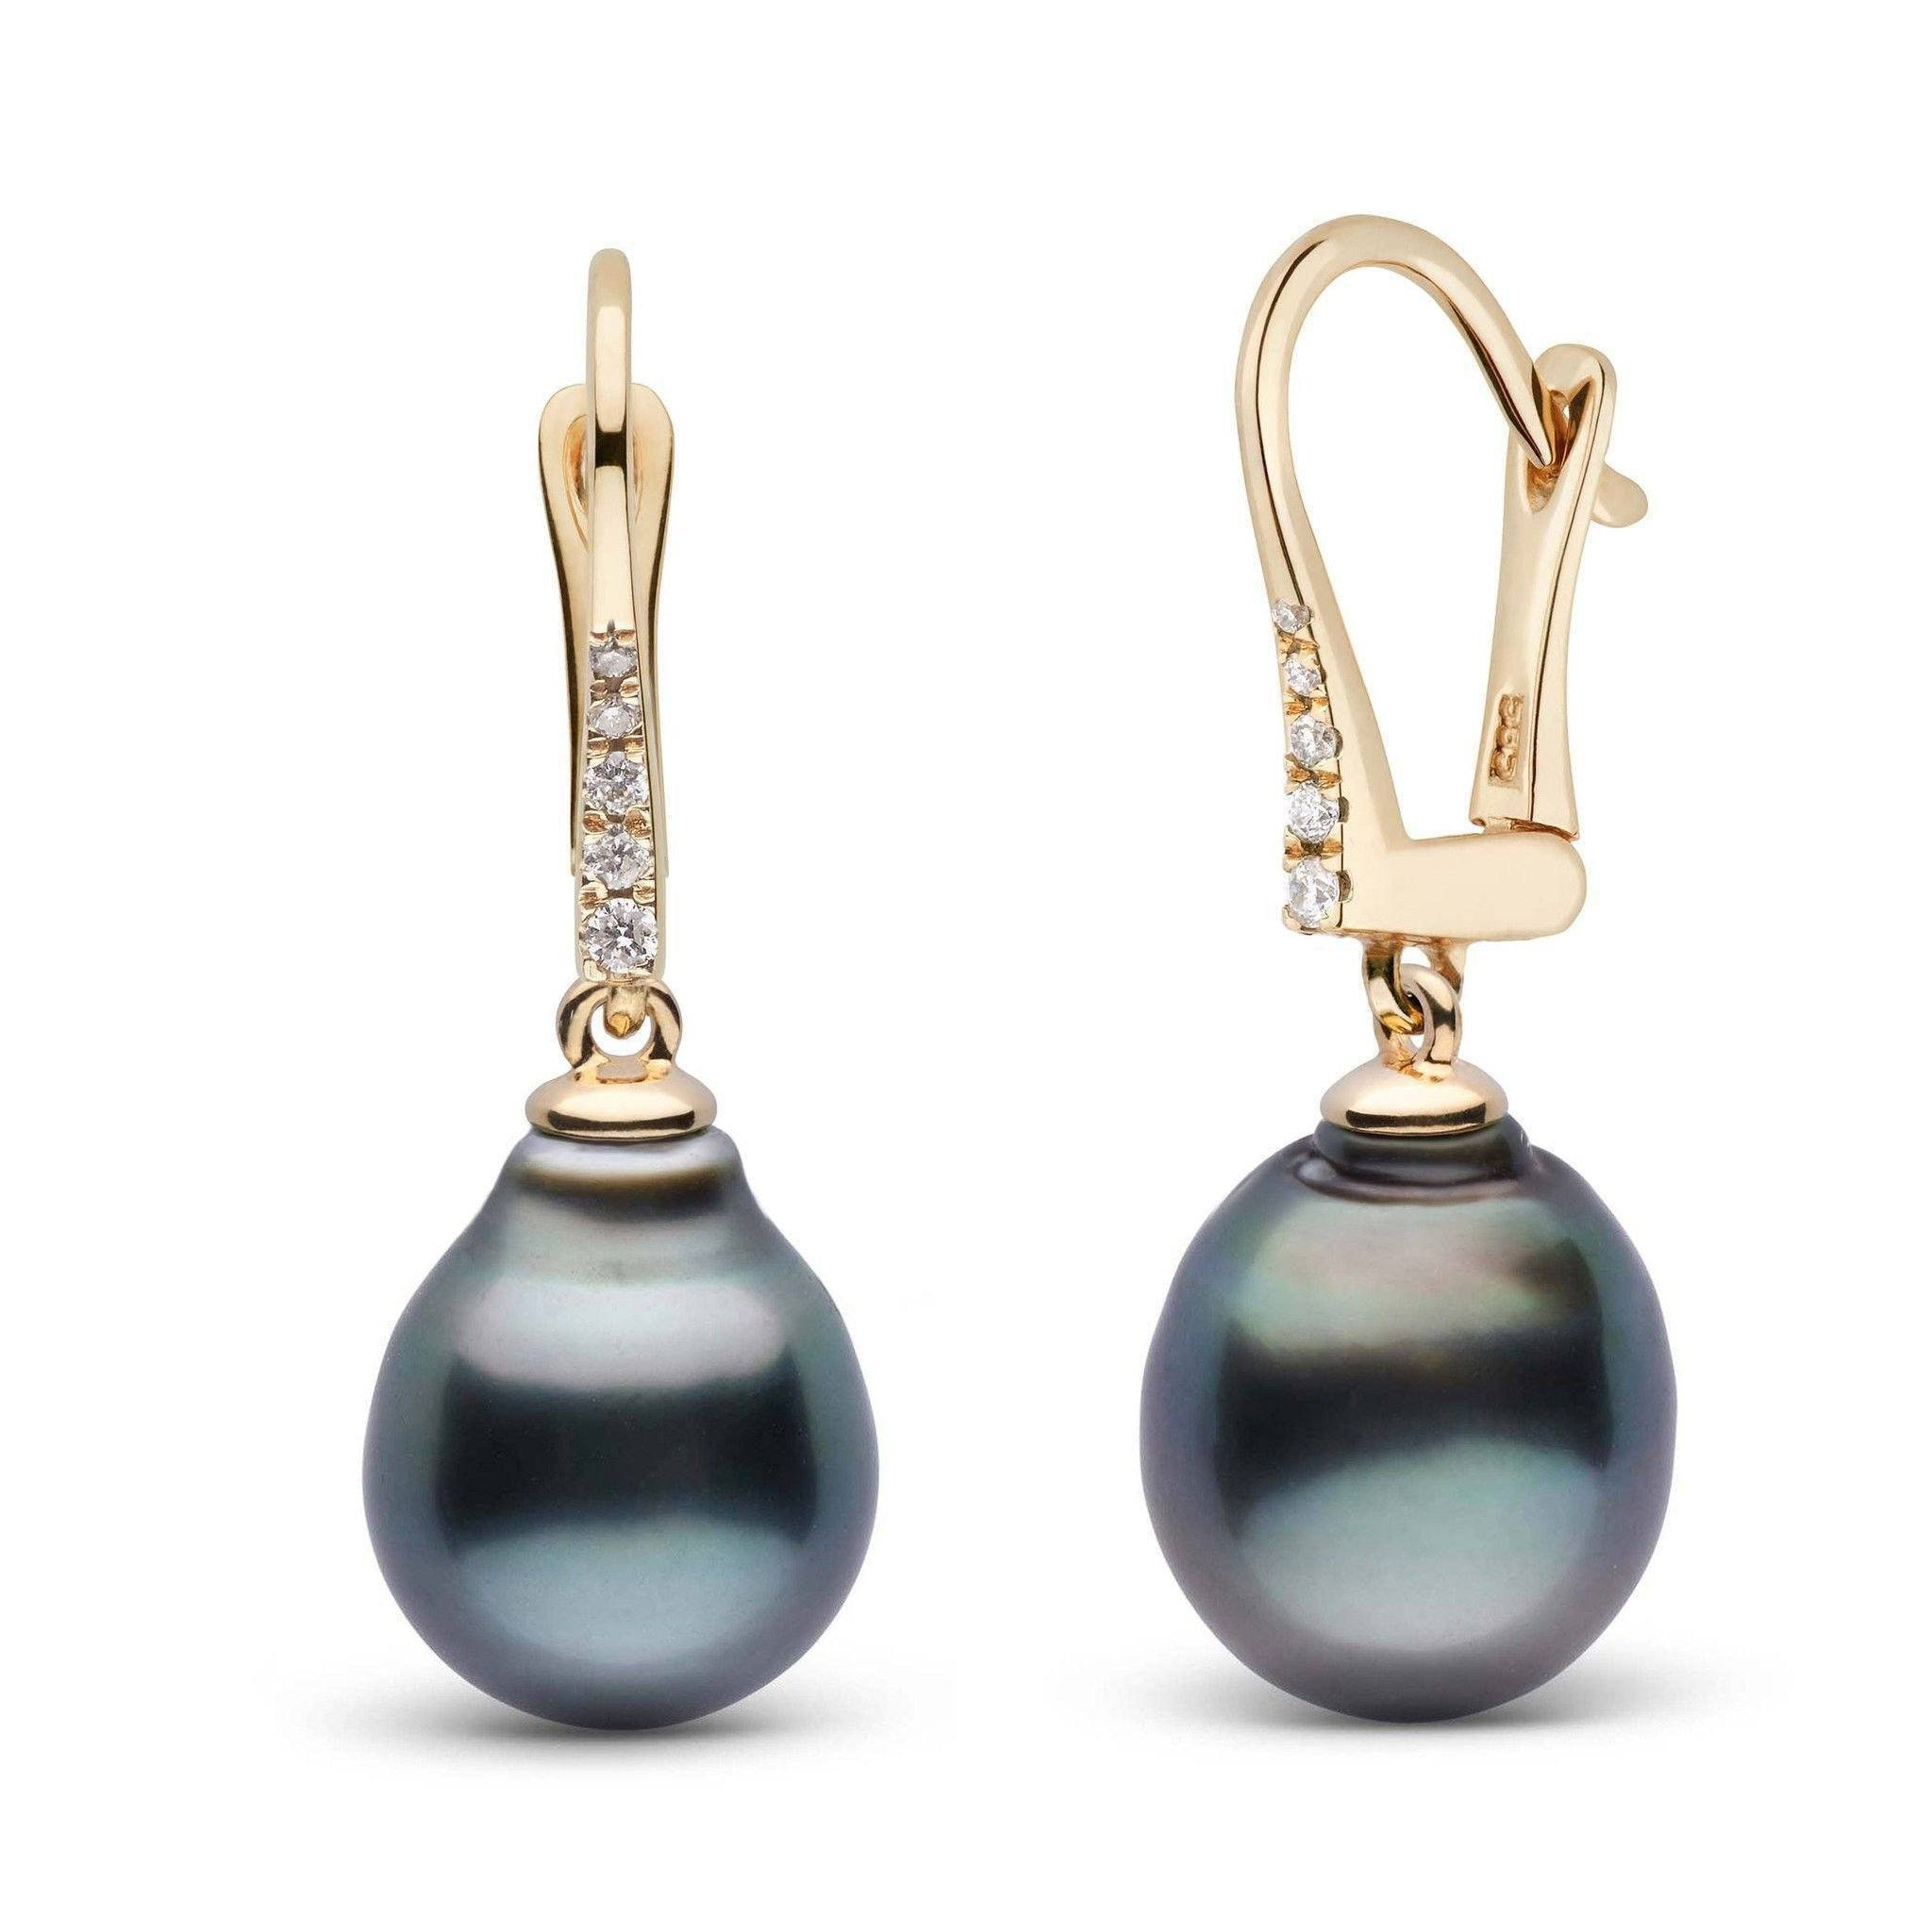 Allure Collection Tahitian Baroque 11.0-12.0 mm Pearl & Diamond Dangle Earrings